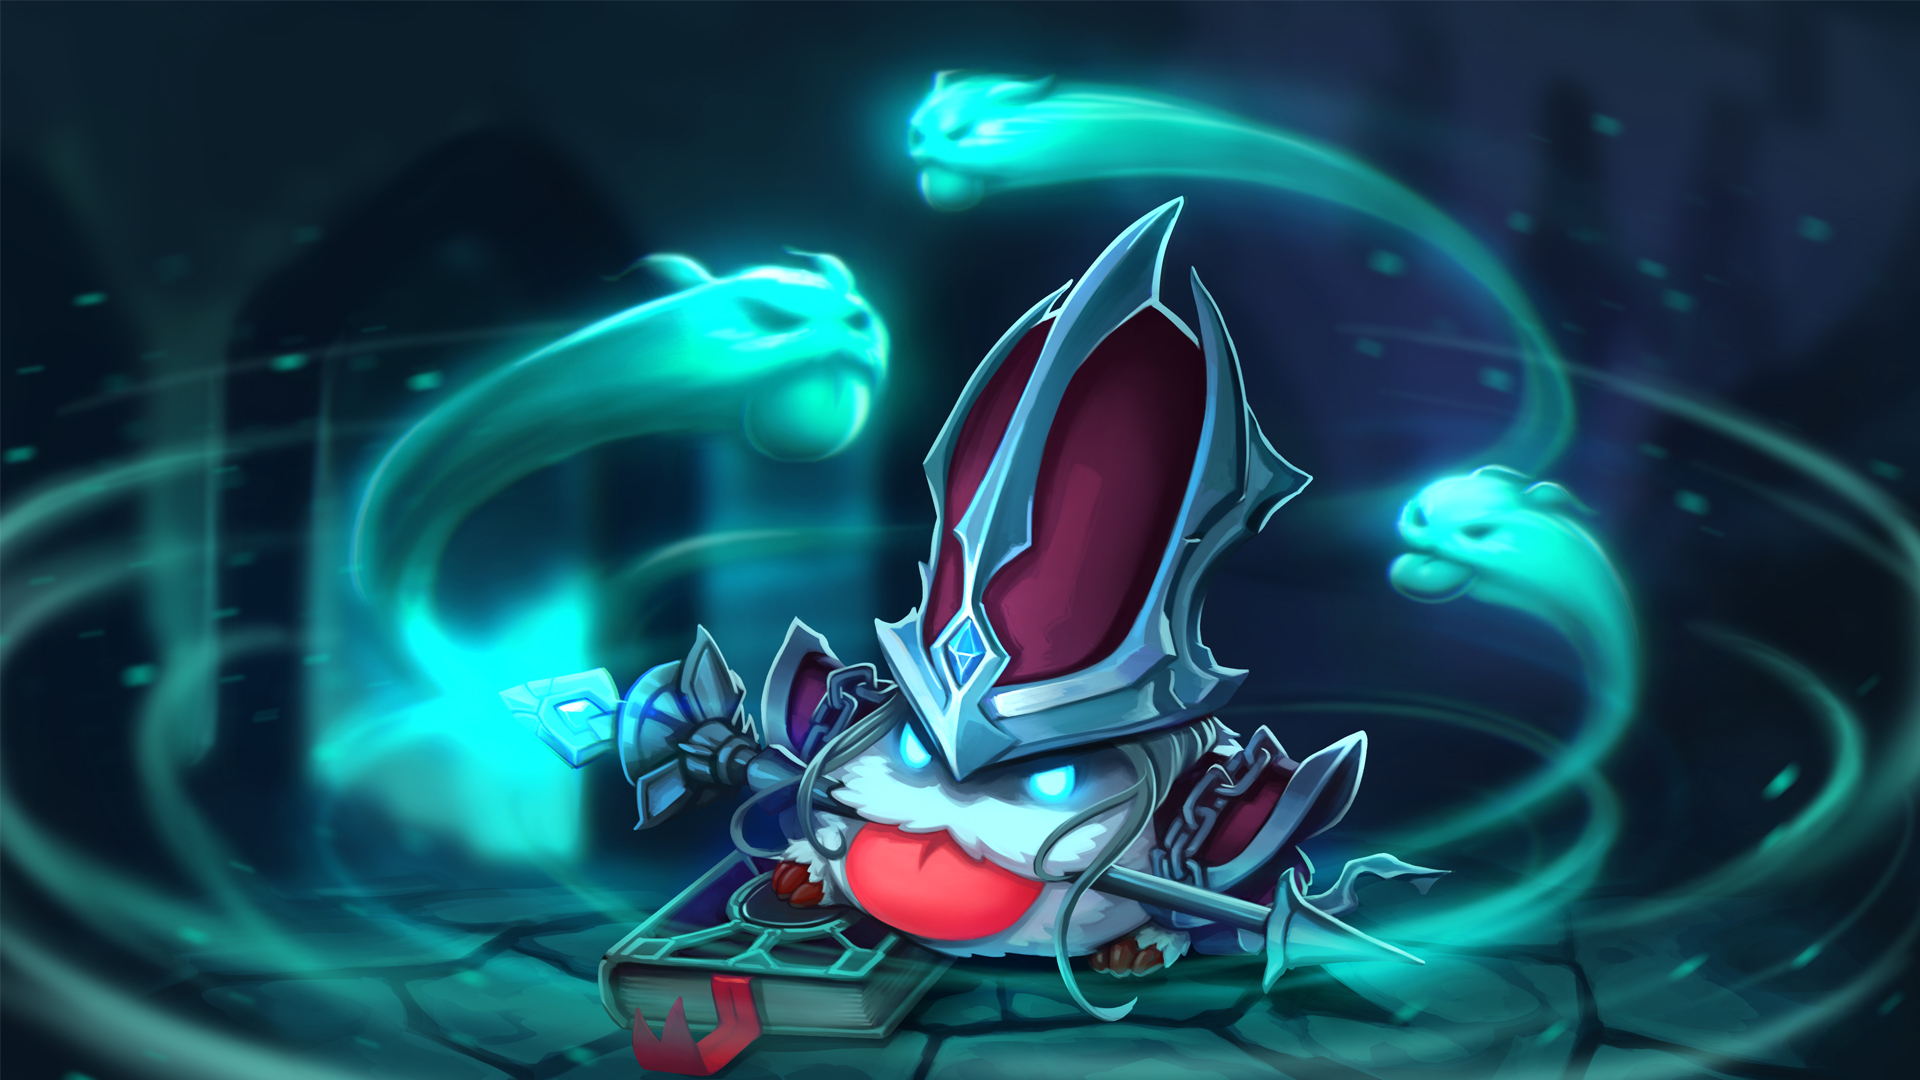 Karthus Poro - Wallpapers HD